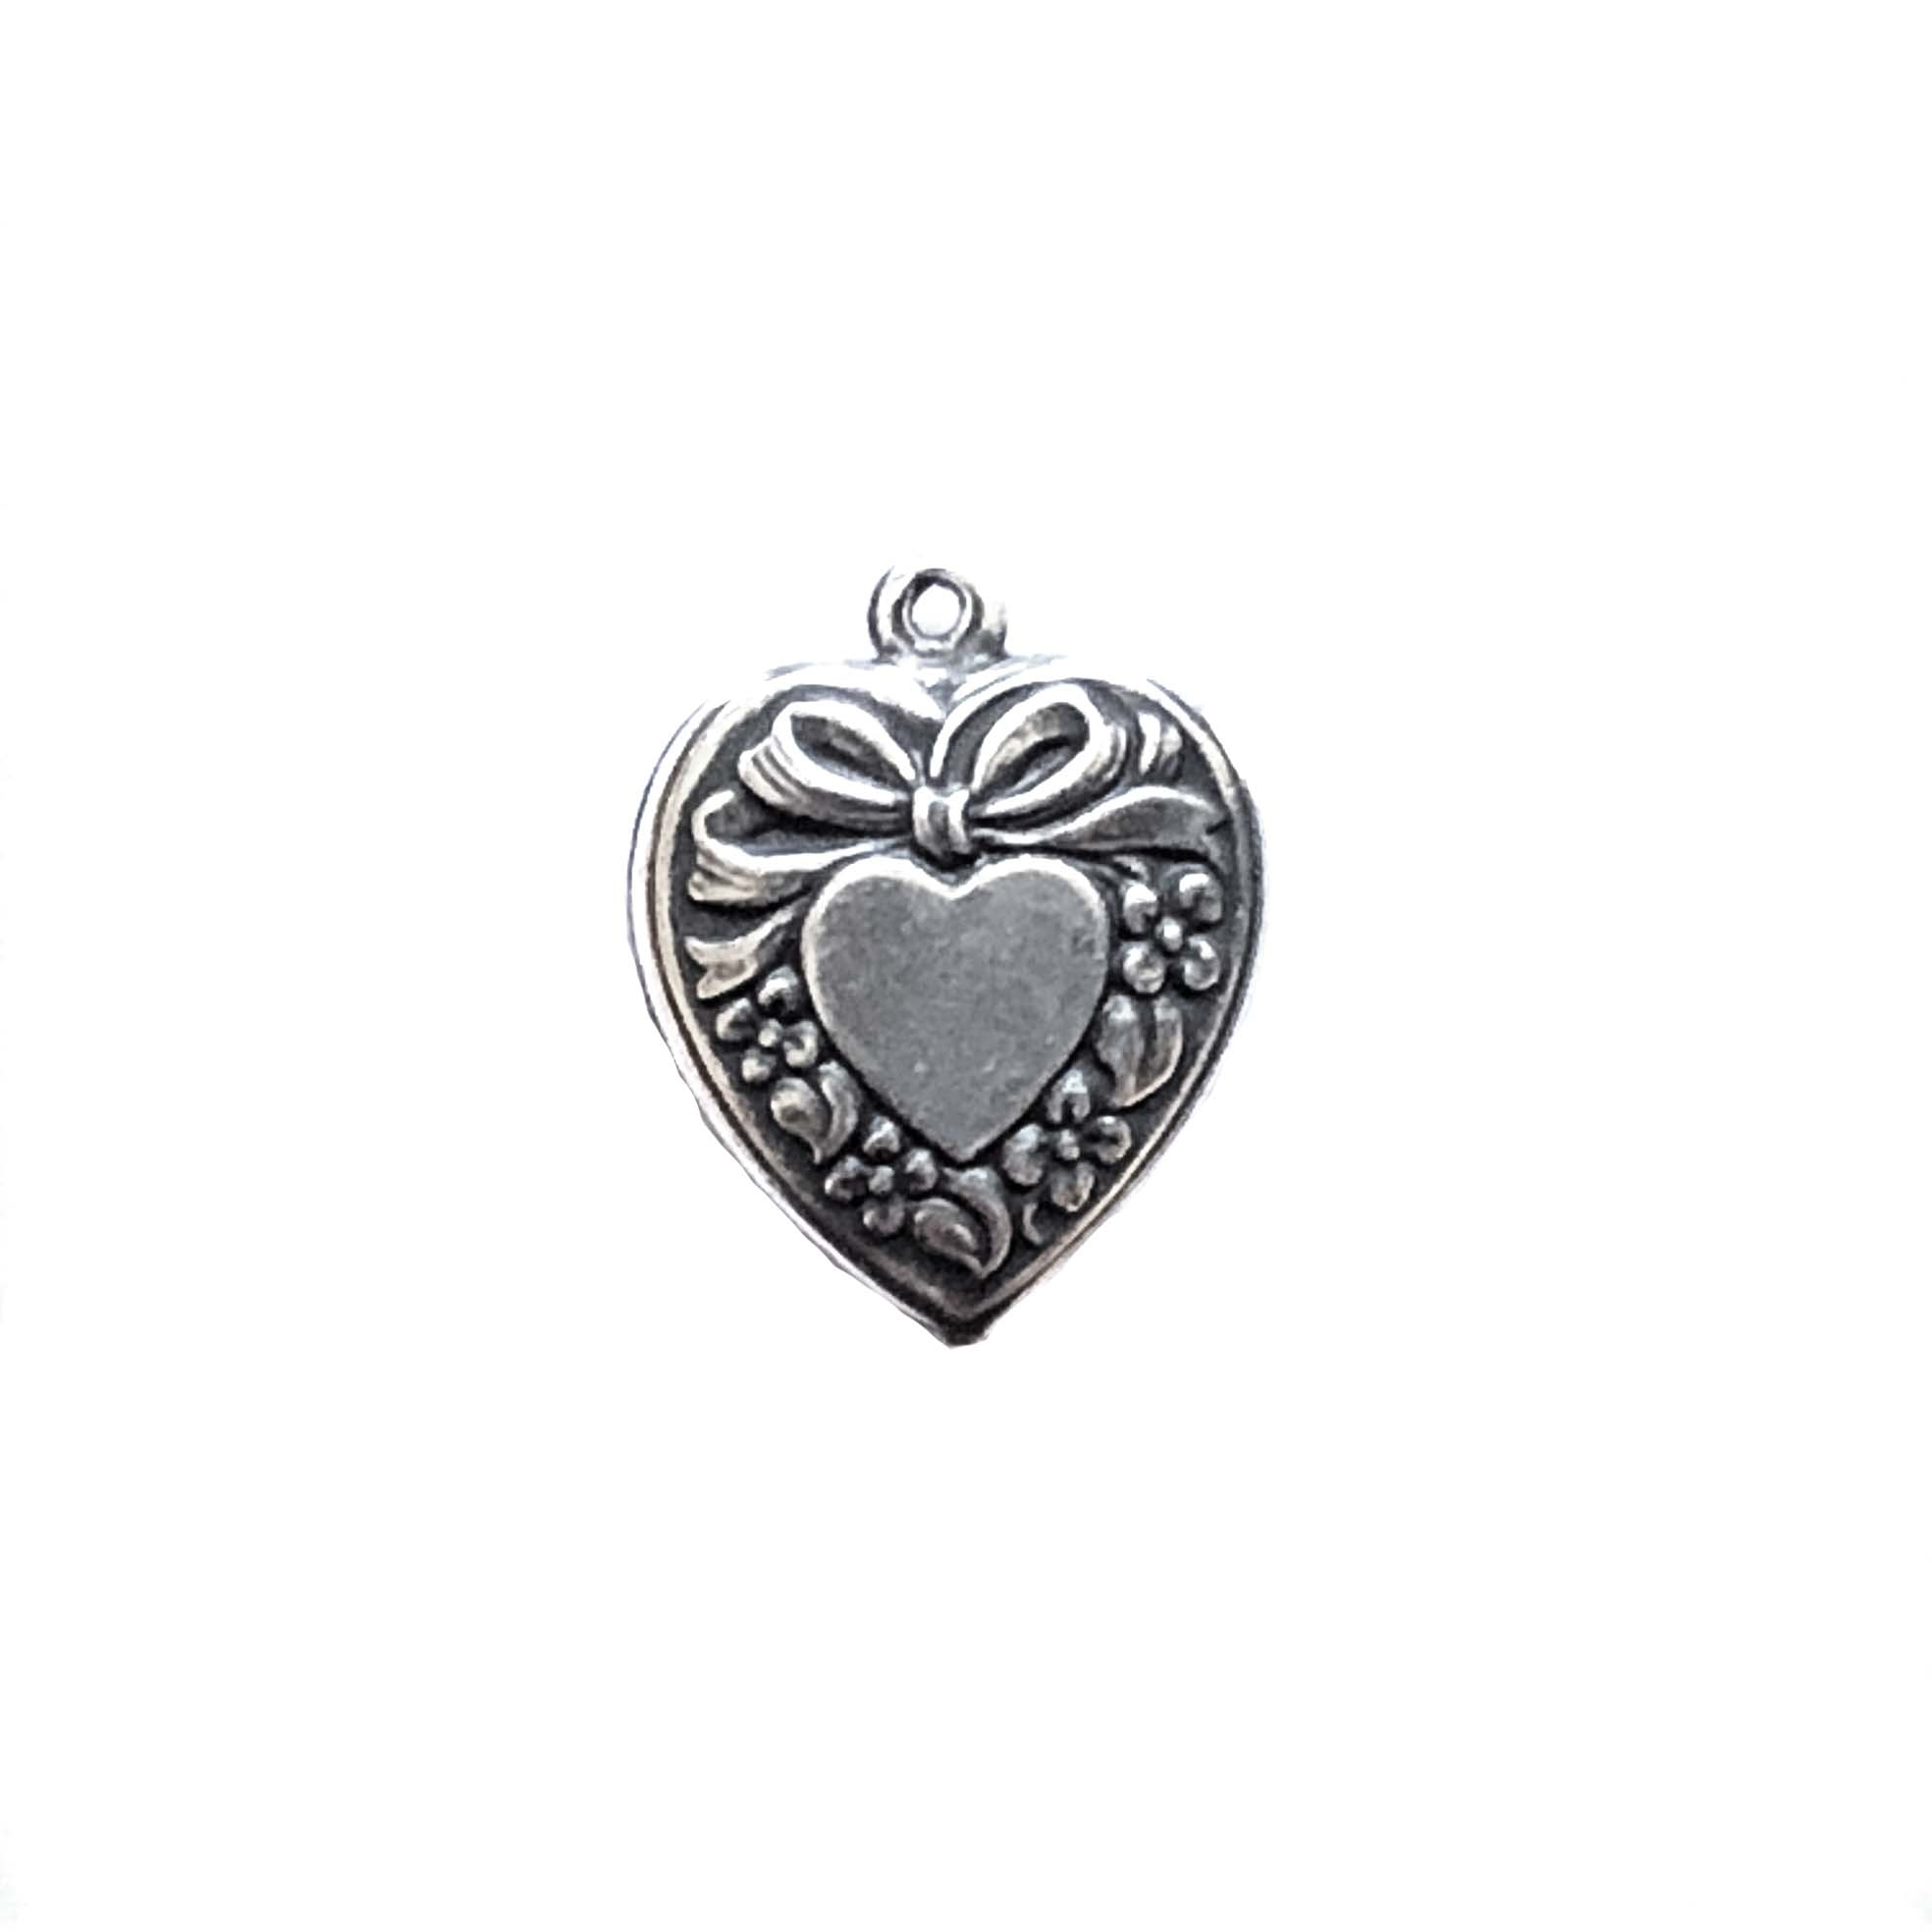 Brass Puffy Heart Charms, Pendants, Silverware Silverplate, 18 x 16mm